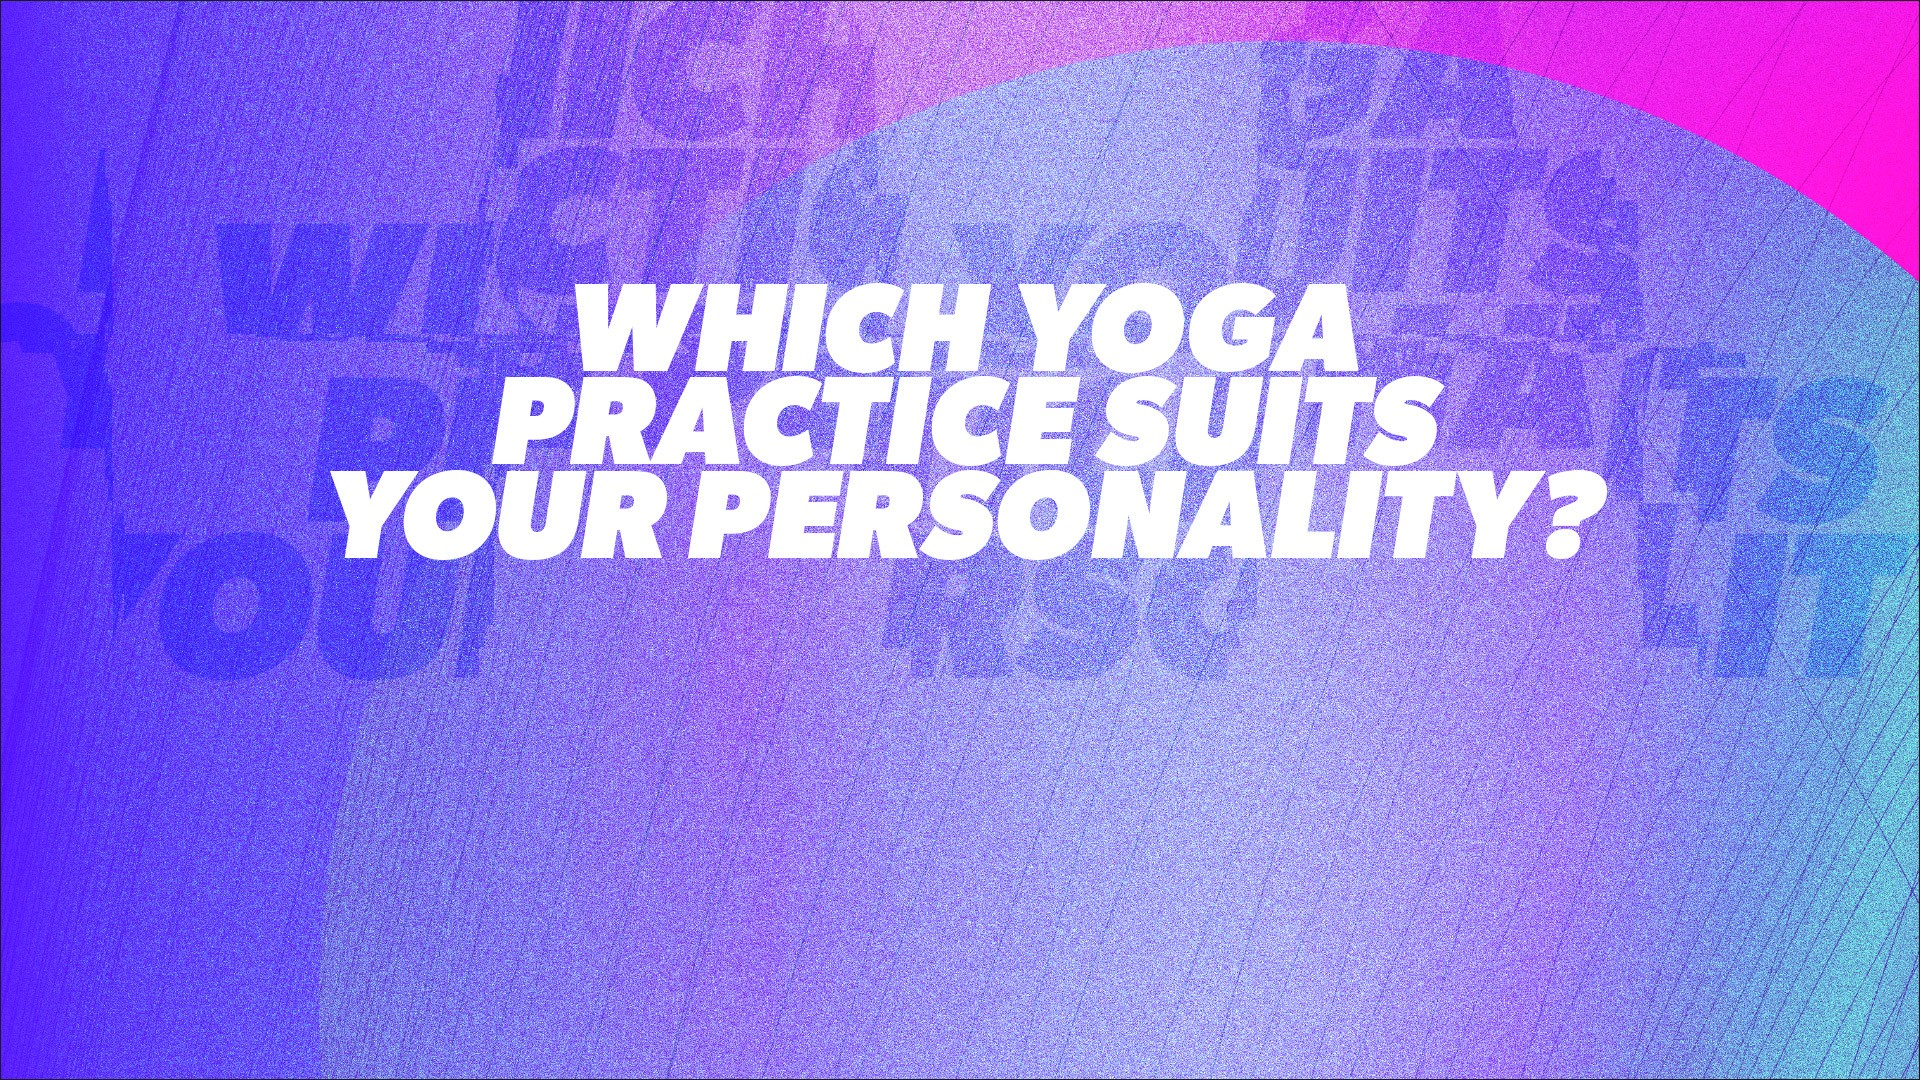 saks a question, which yoga suits your personality